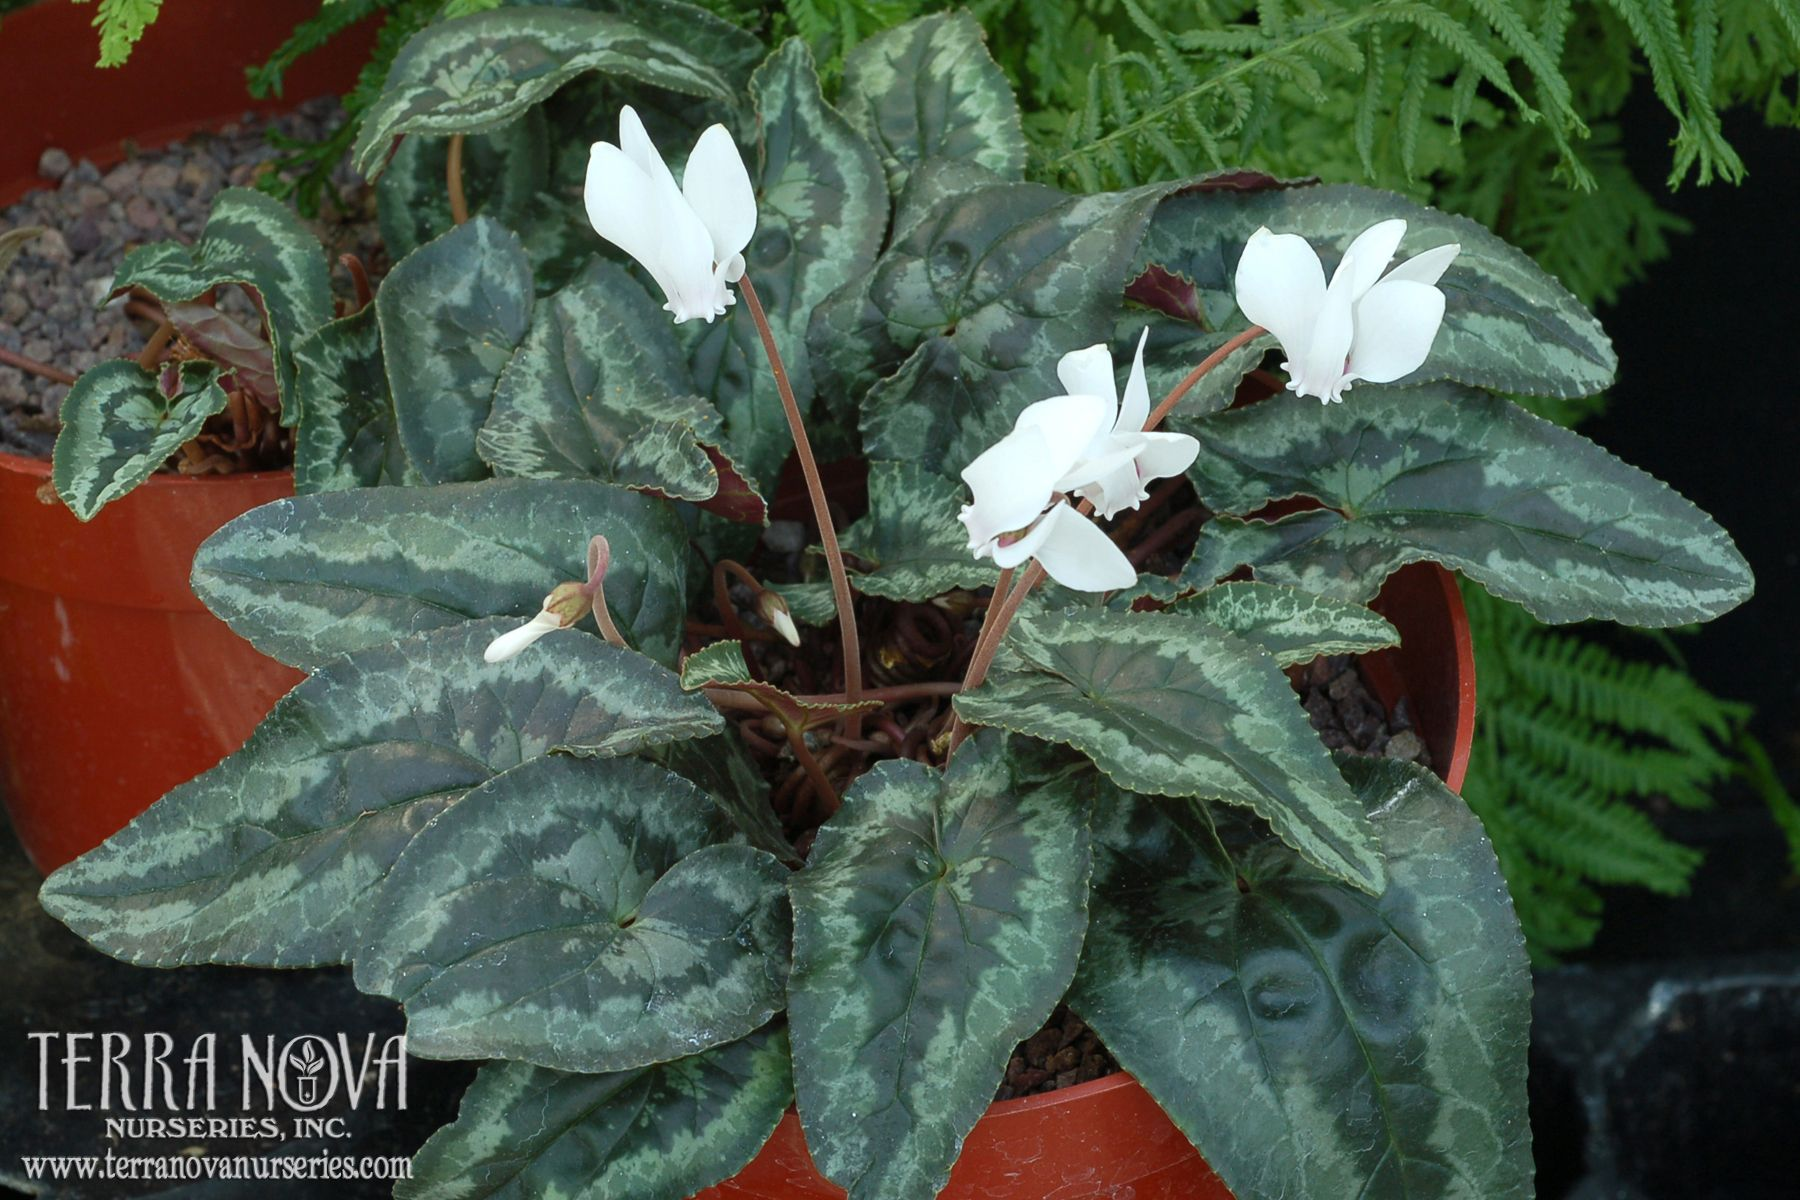 Cyclamen Sweetheart Flame Remarkable Arrowhead Shaped Leaves